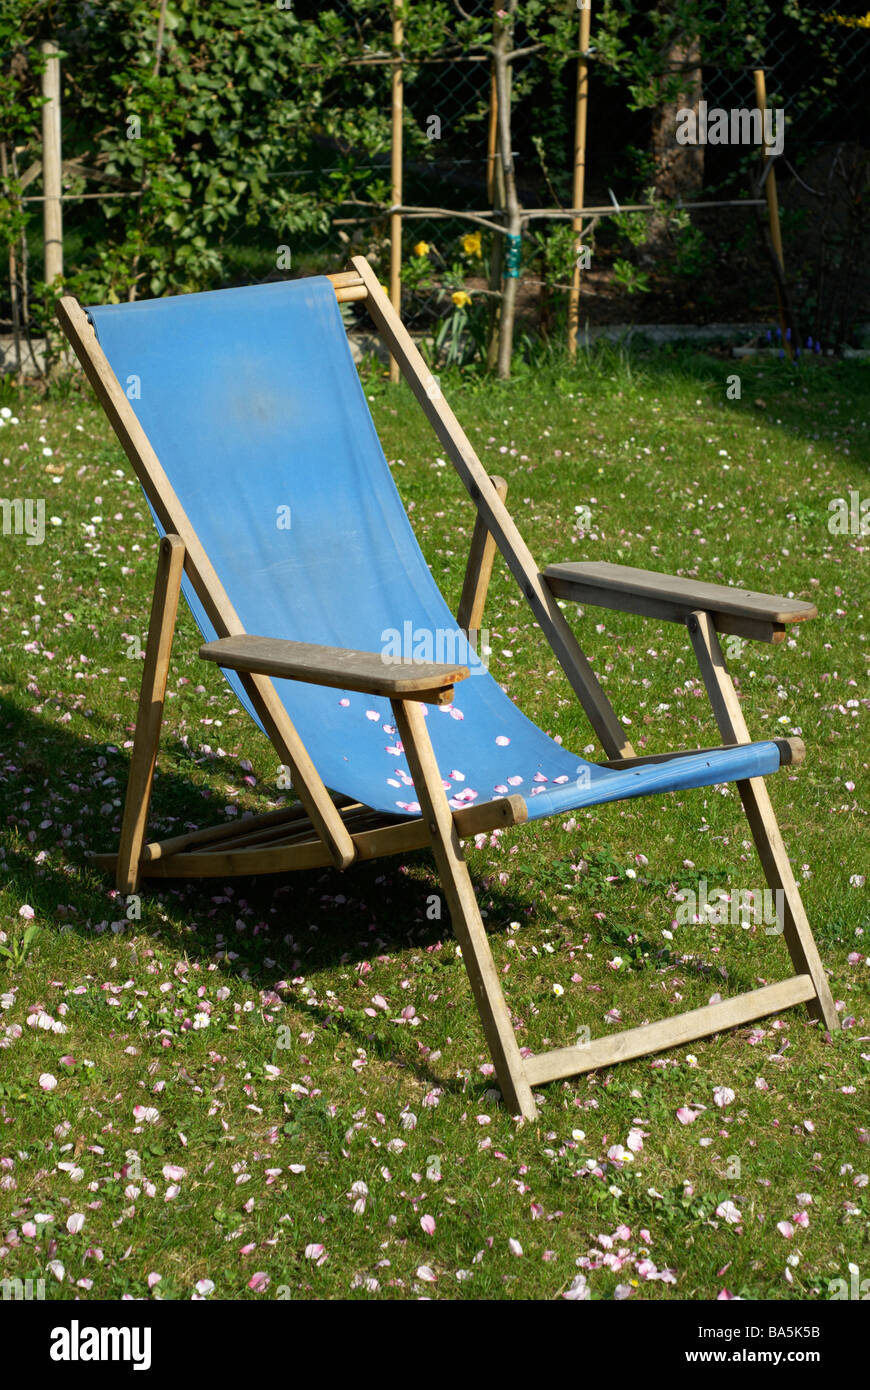 Deck chair covered by petals - Stock Image